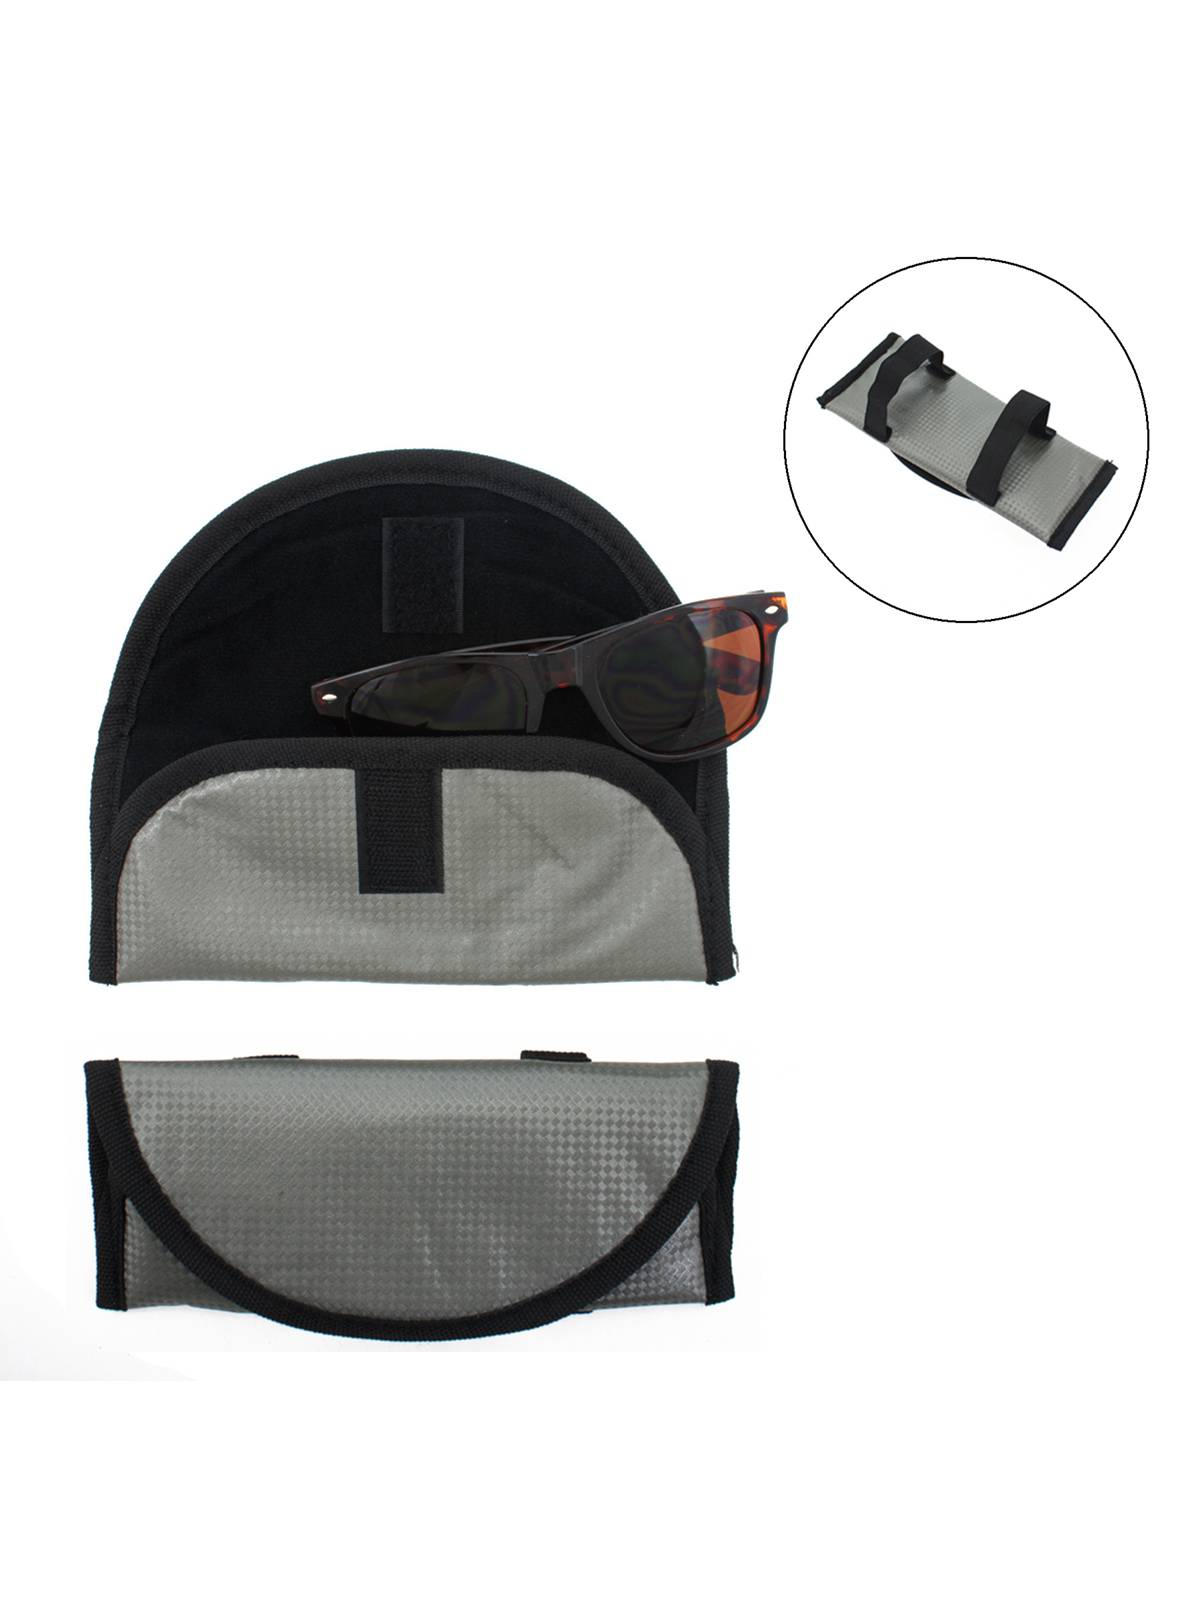 2 Visor Sunglasses Soft Protective Cases Holders -Easy Storage For Car Or Truck